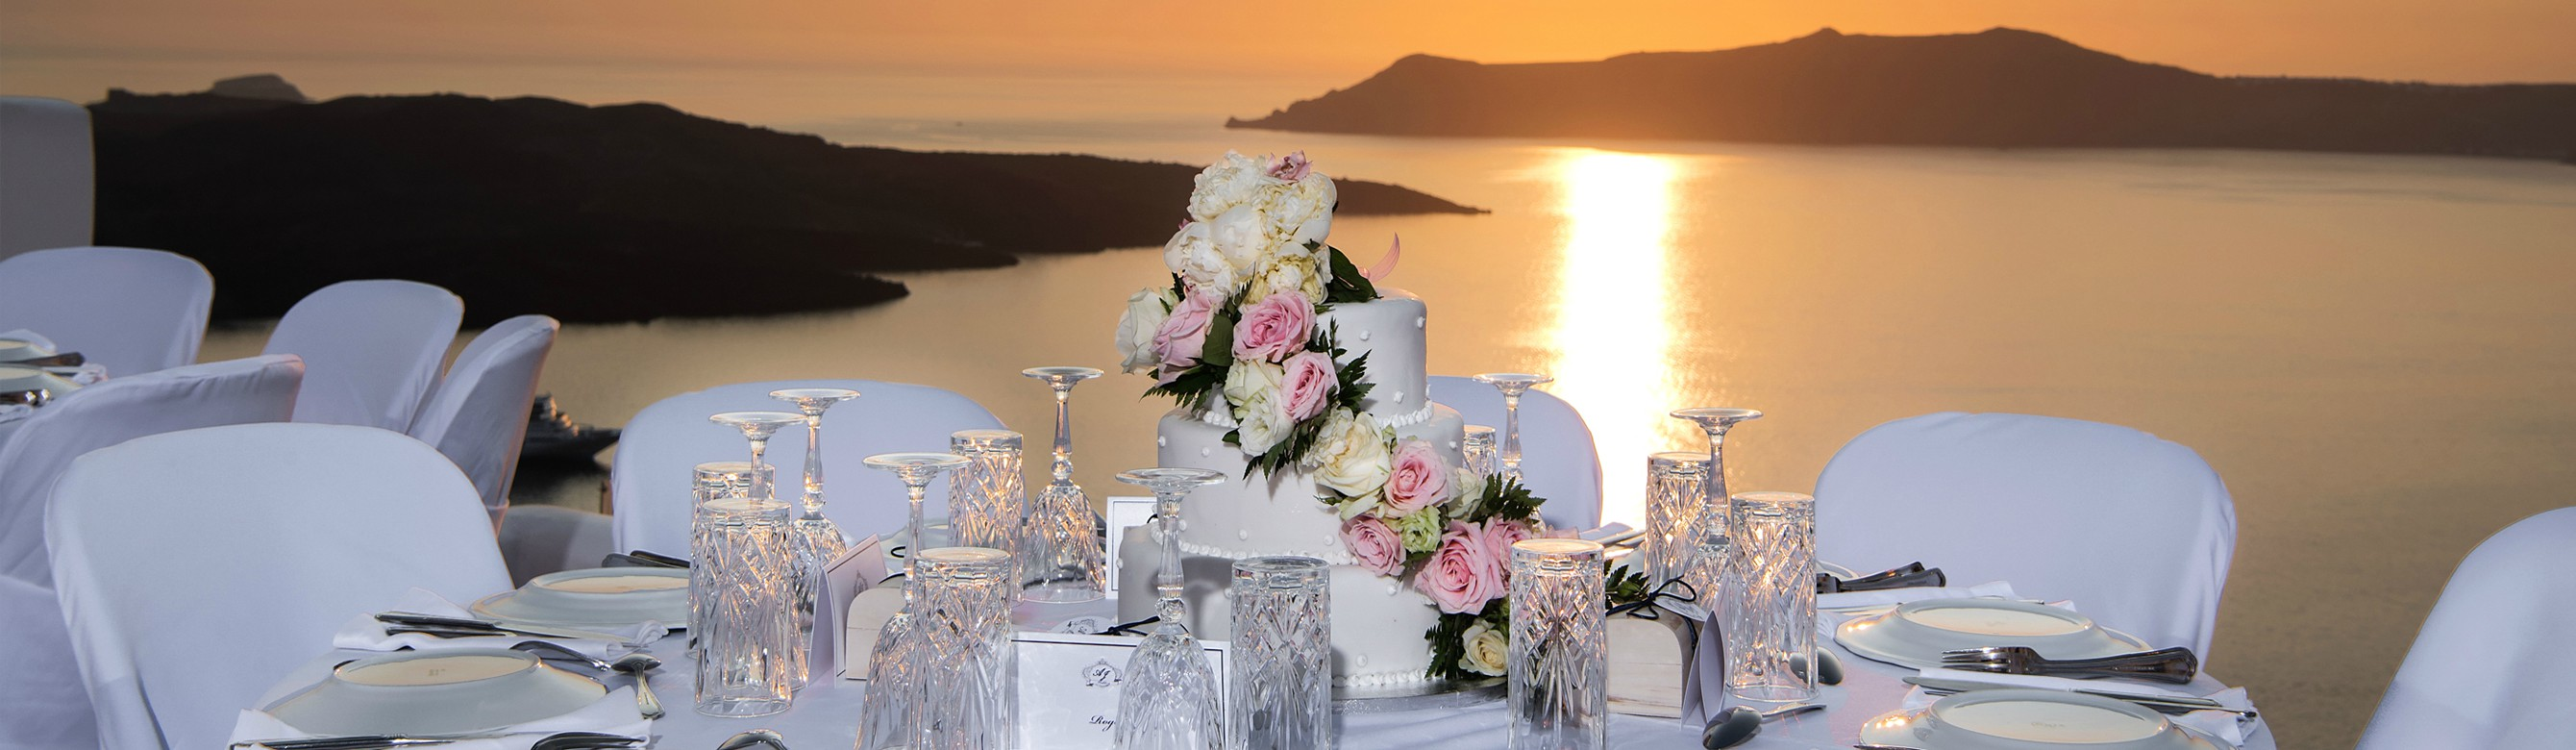 Book your wedding day in Athina Luxury Suites